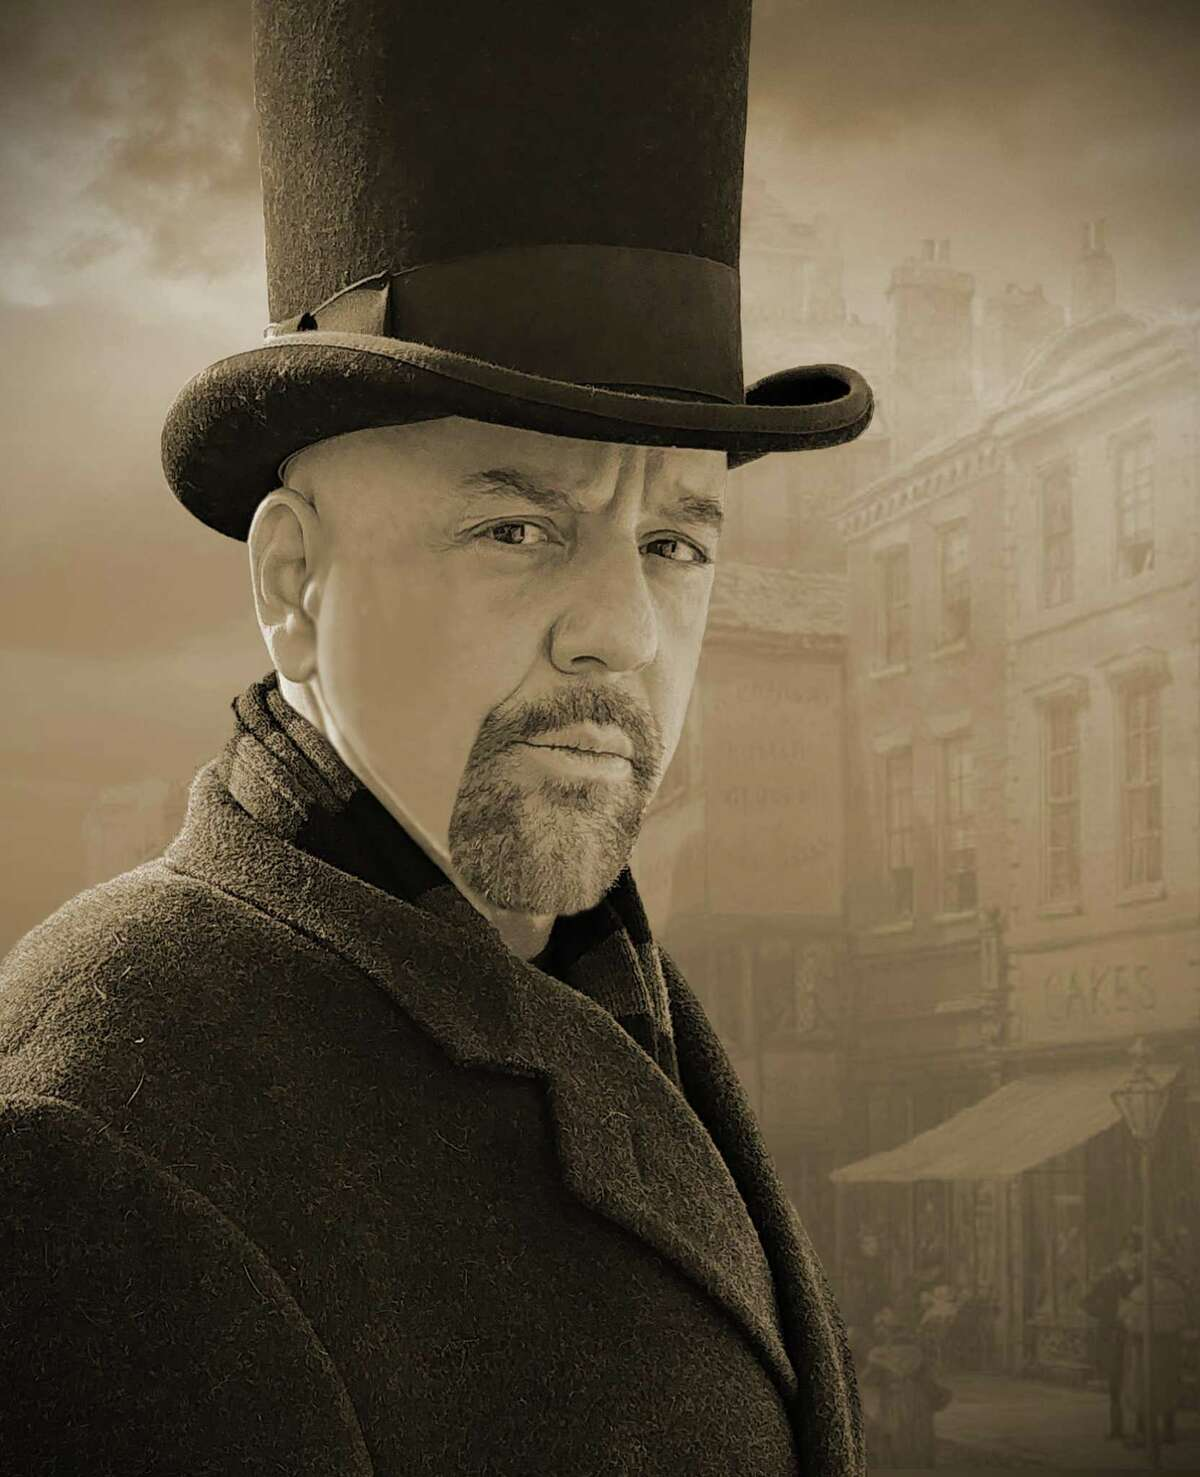 Patrick Spadaccino stars in his one-man adaptation of the Charles Dickens' classic A Christmas Carol.